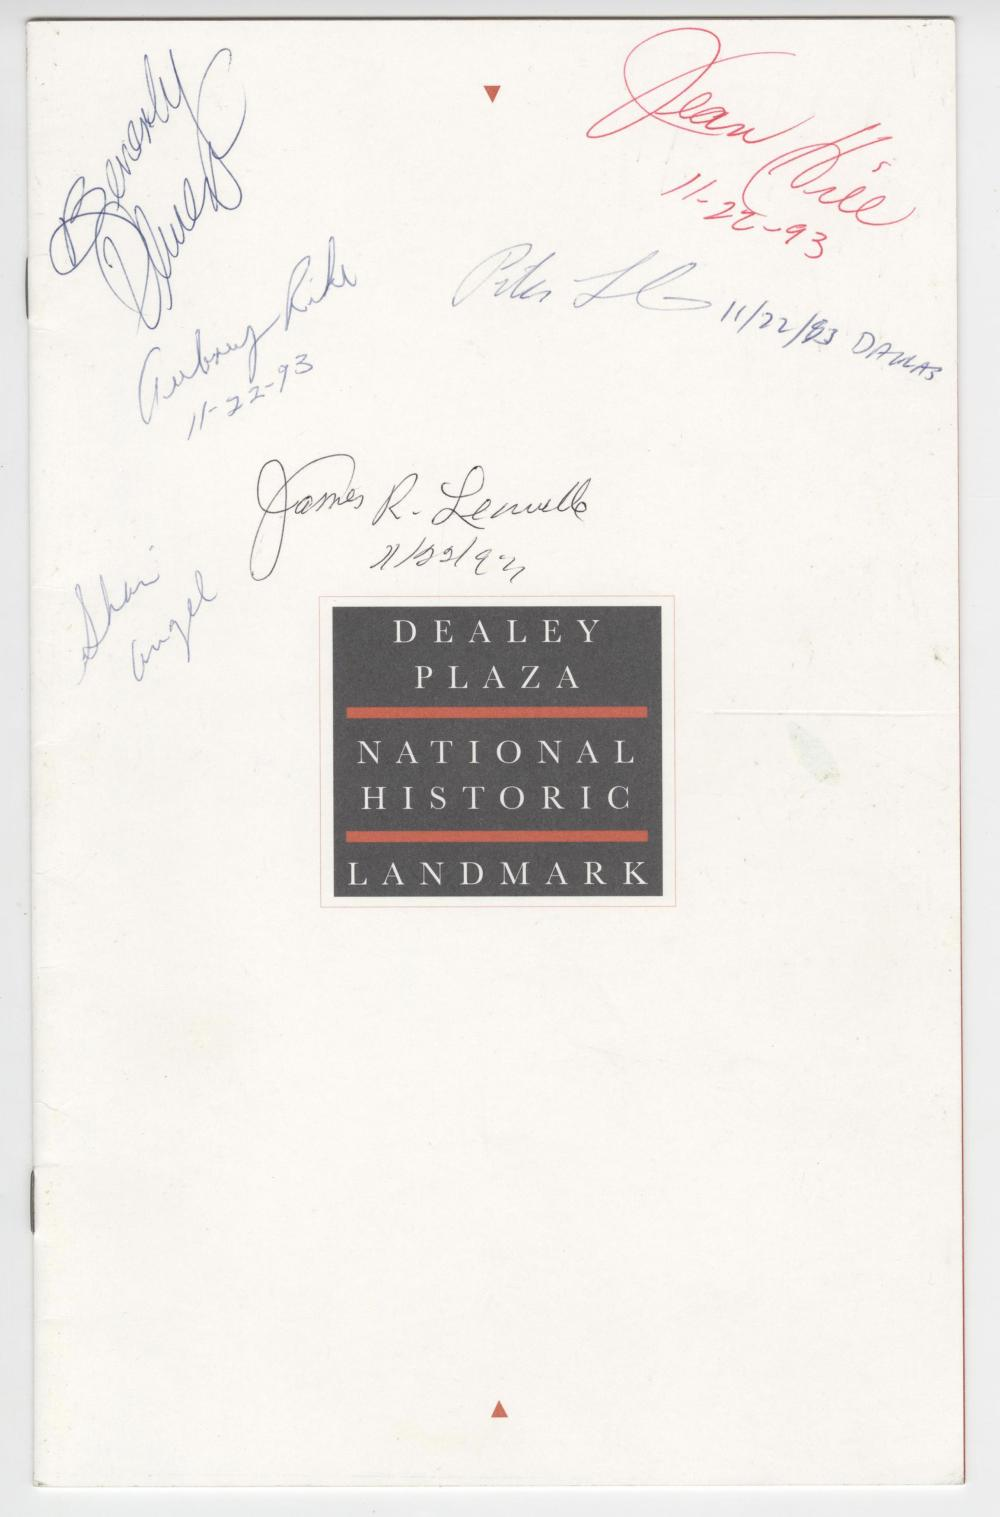 JFK Dealey Plaza Dedication Event, Signed by People of Relevance To the Assassination